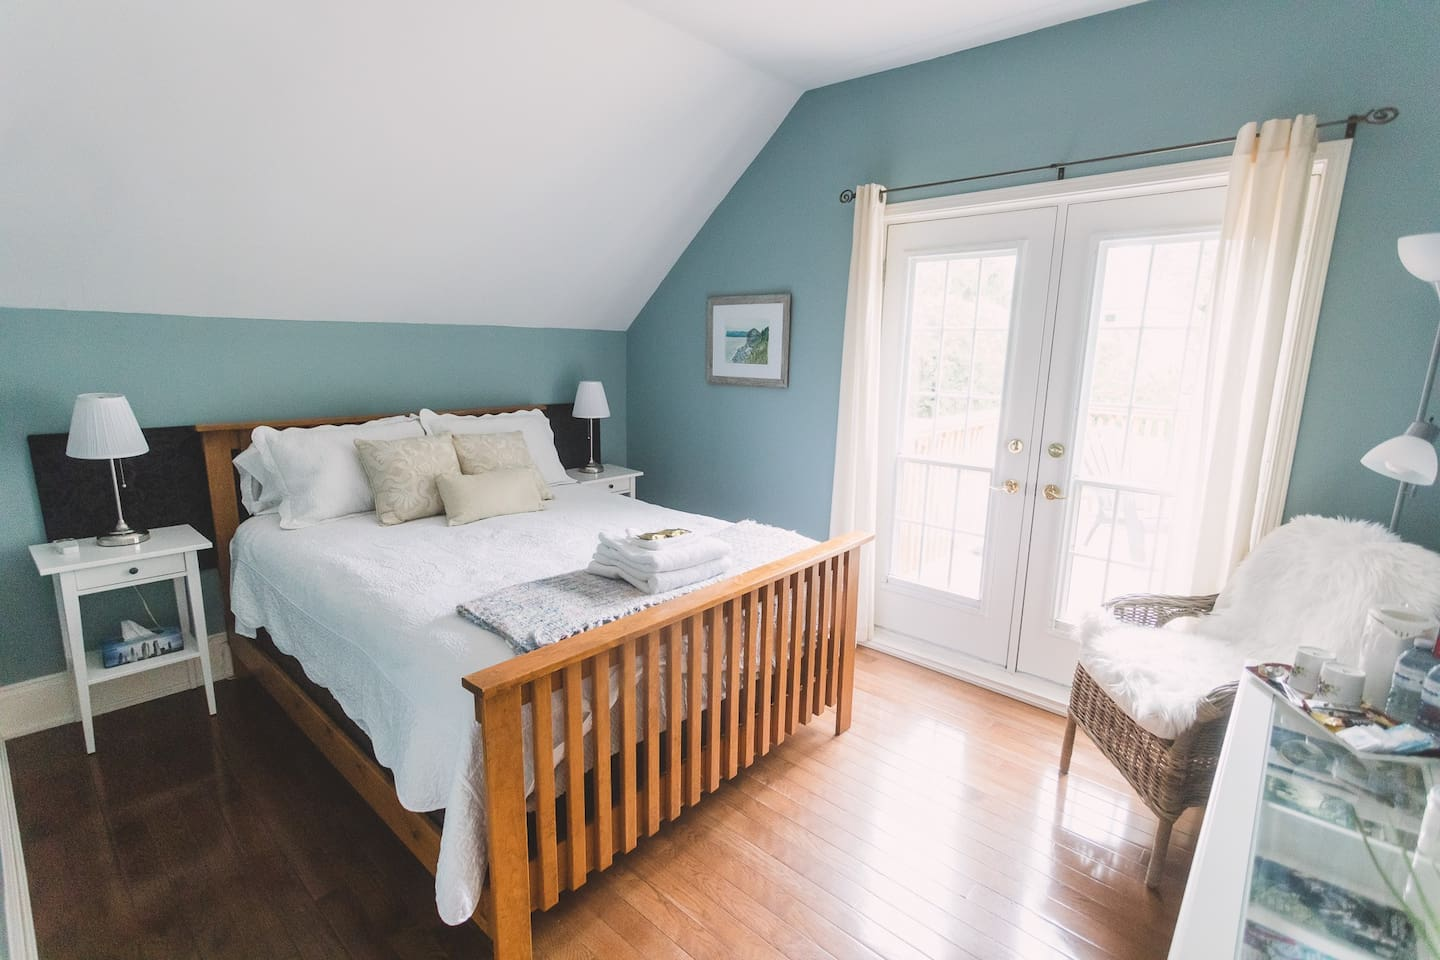 Charming guest room in century home.